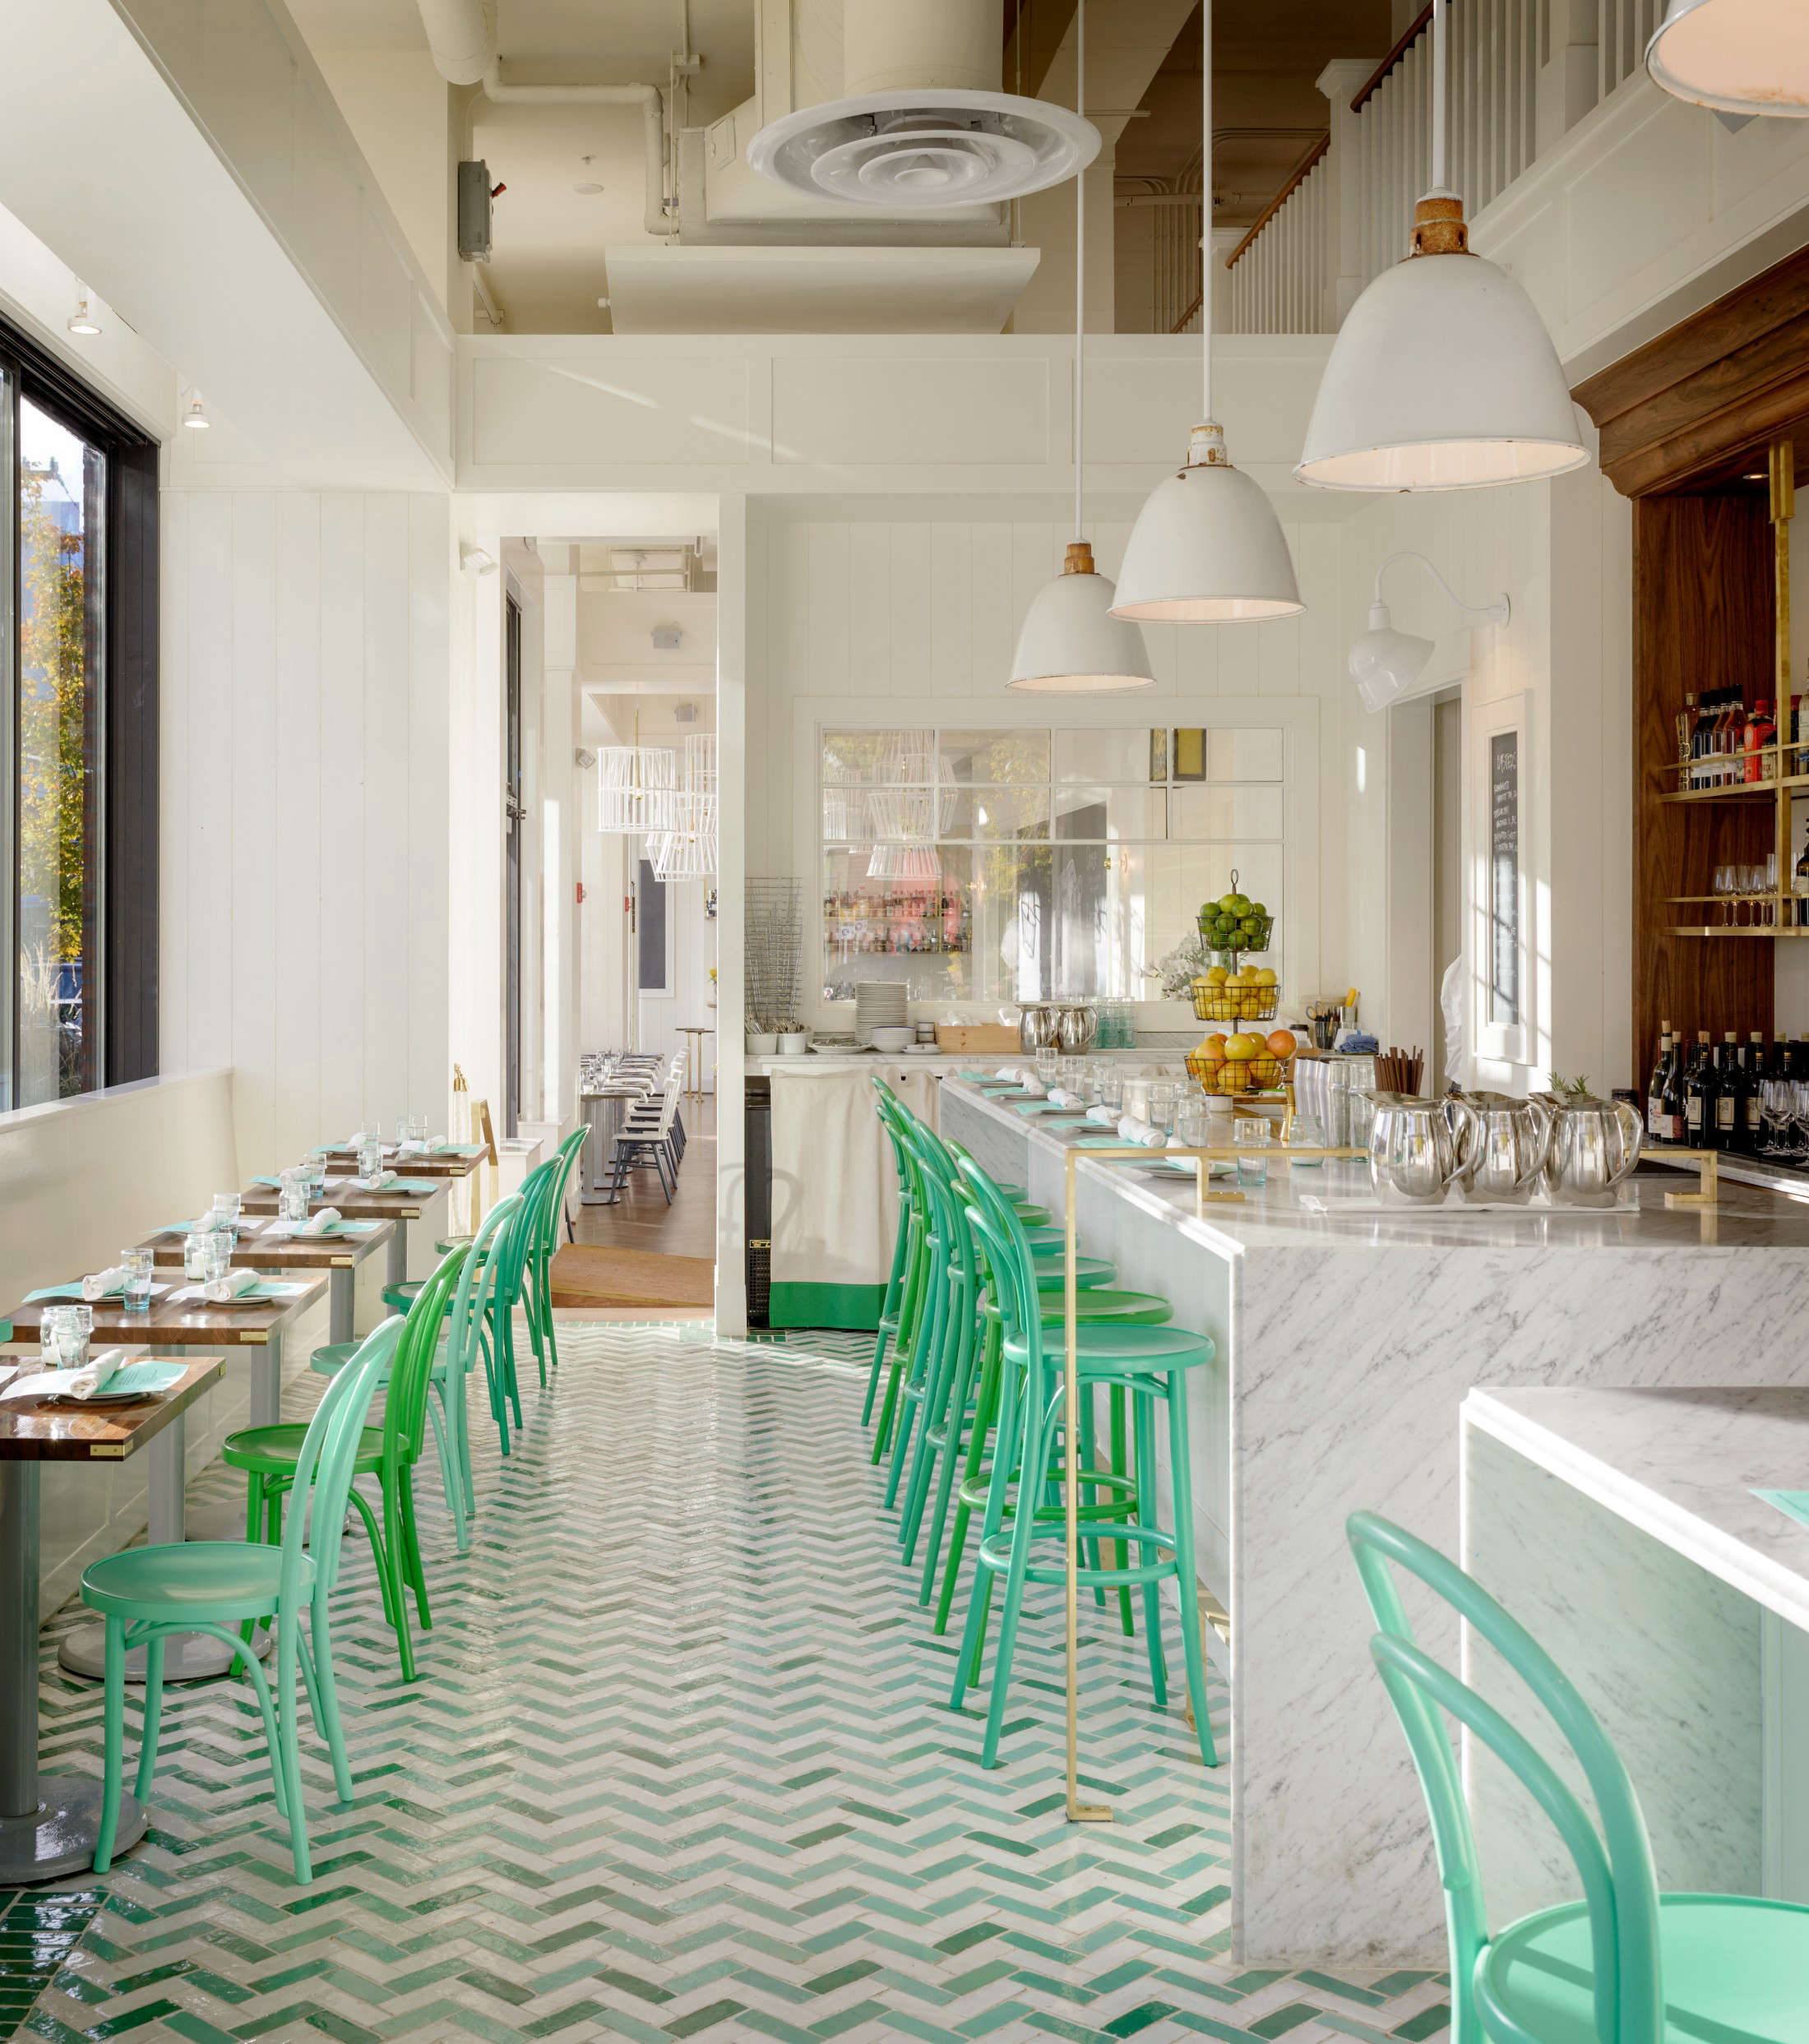 As at the Walrus &the Carpenter, another Erickson restaurant,the oyster bar is the star of Bar Melusine, which serves Brittany-style raw, smoked, and pickled seafood and shellfish.